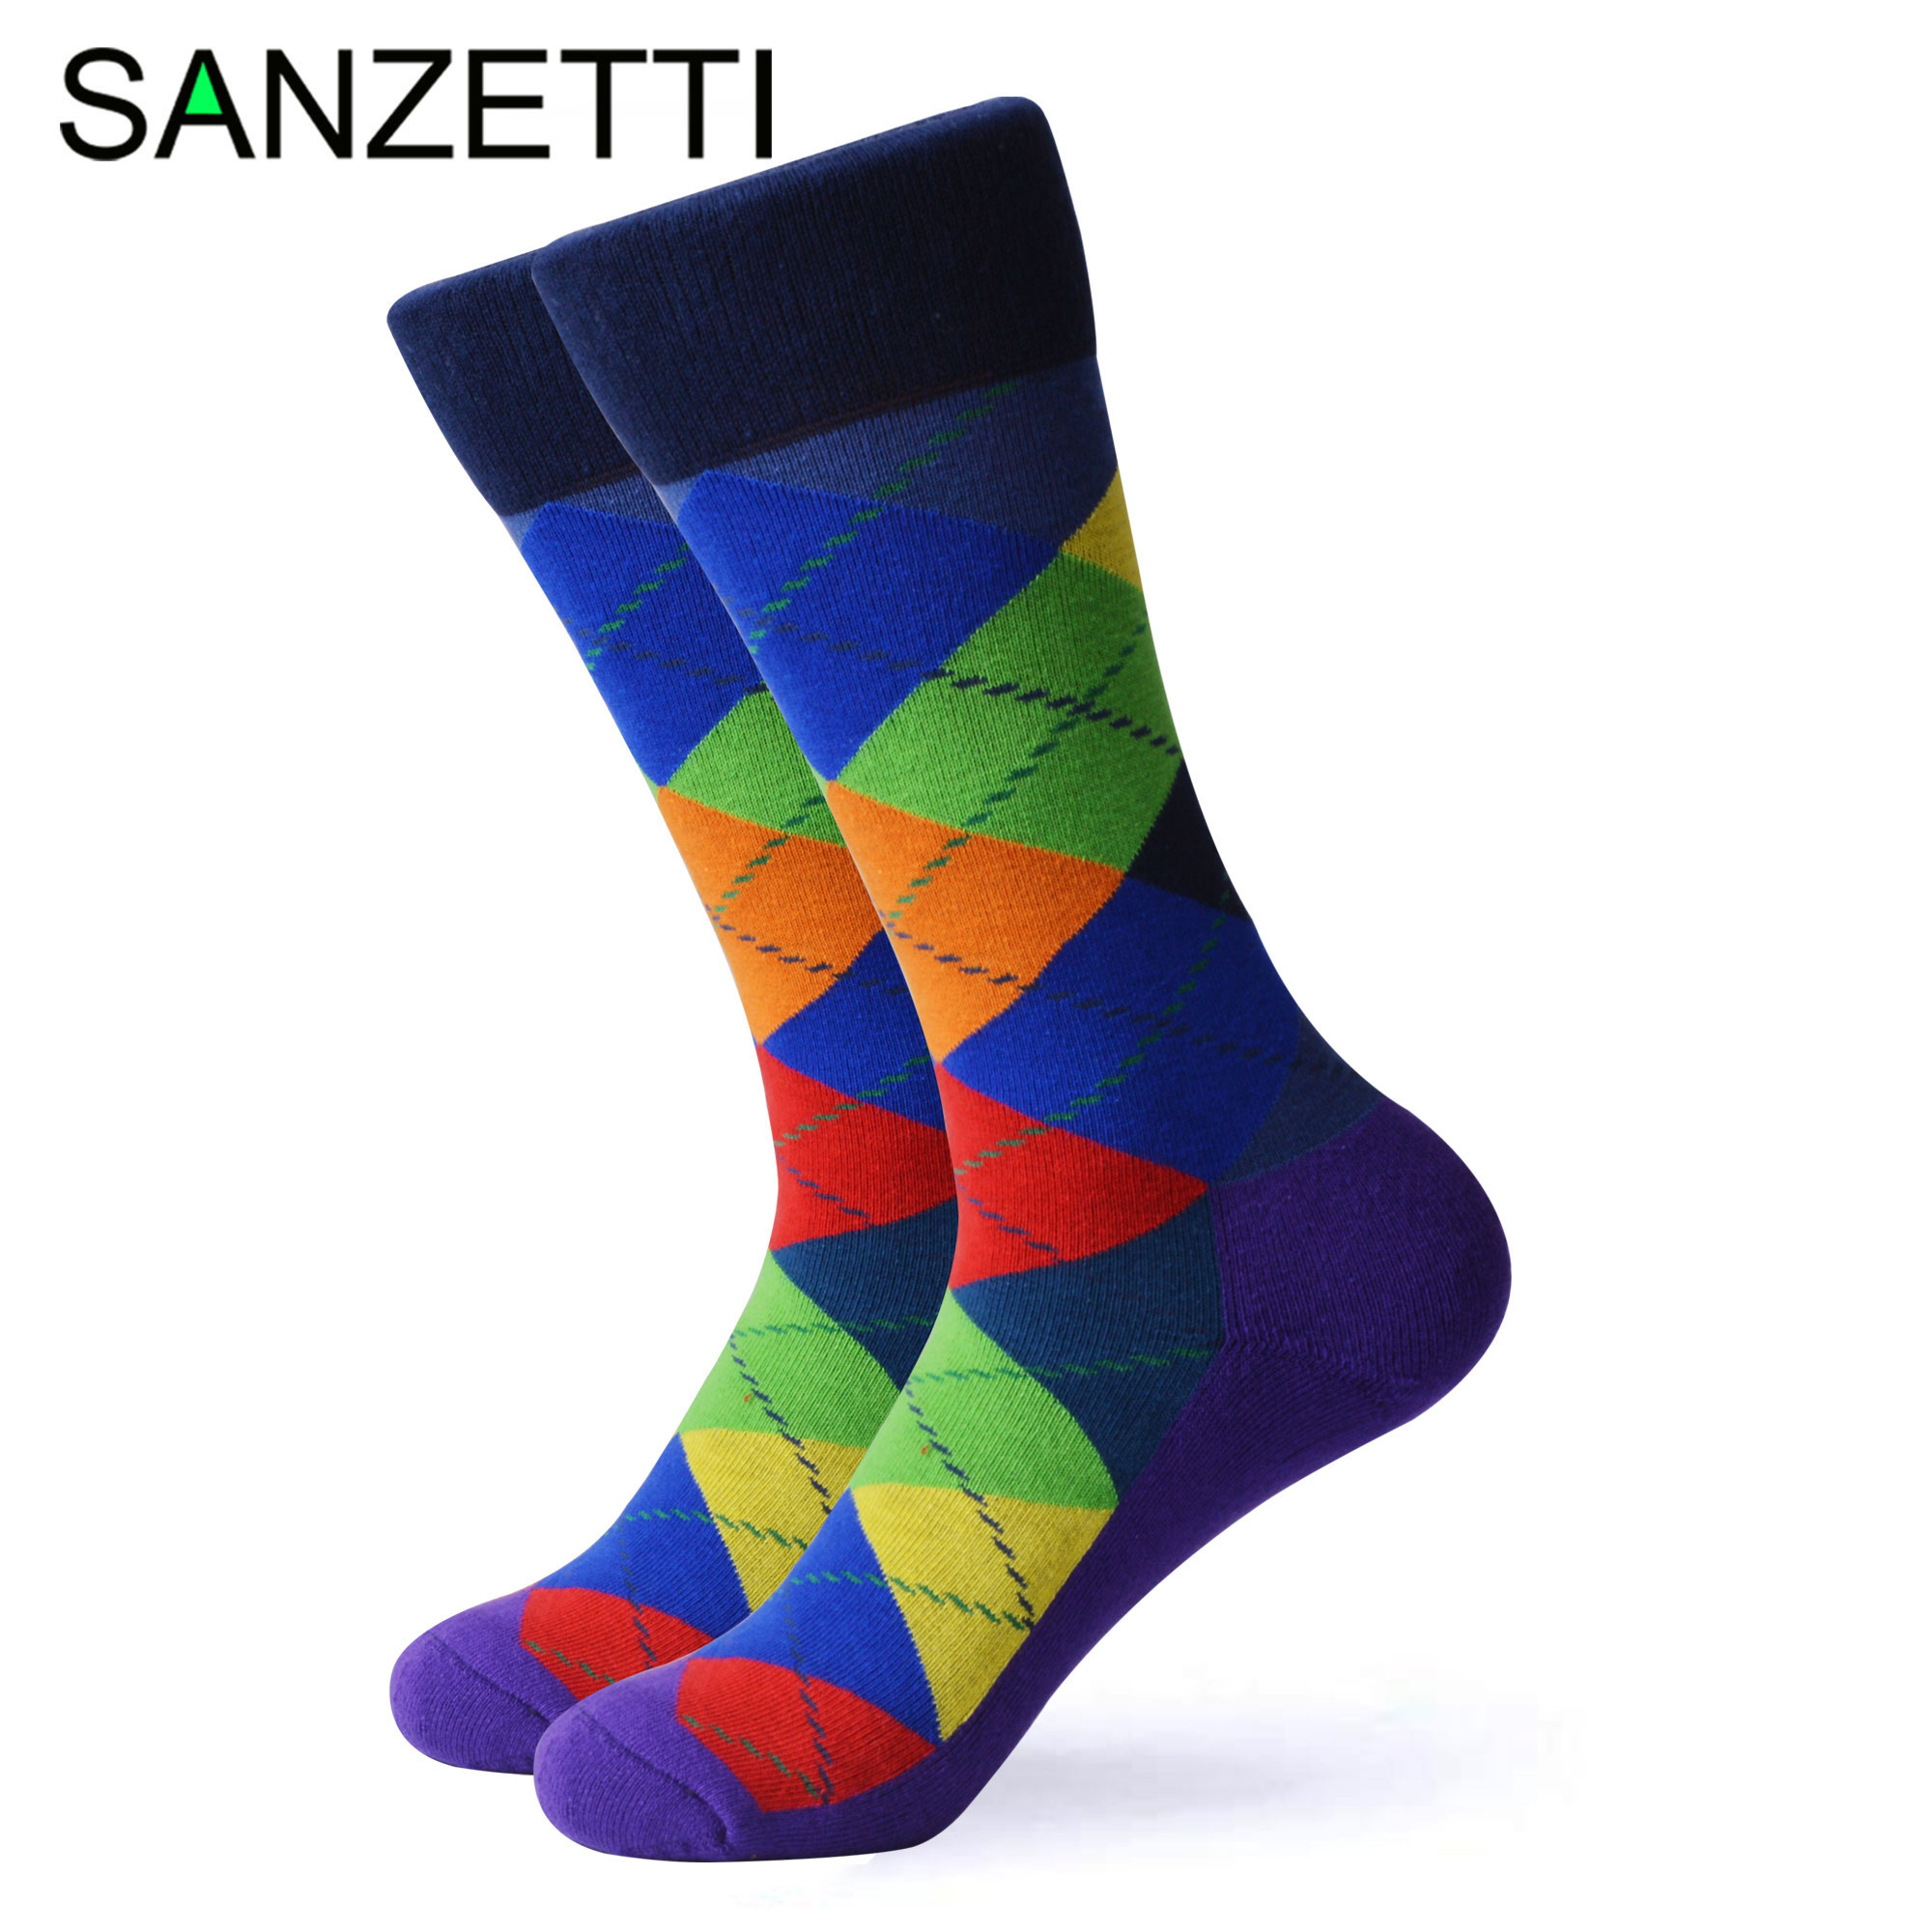 SANZETTI 1 Pair Happy Socks High Quality Men's Colorful Comfortable Combed Cotton Bright Novelty Cool Wedding Dress Terry Socks